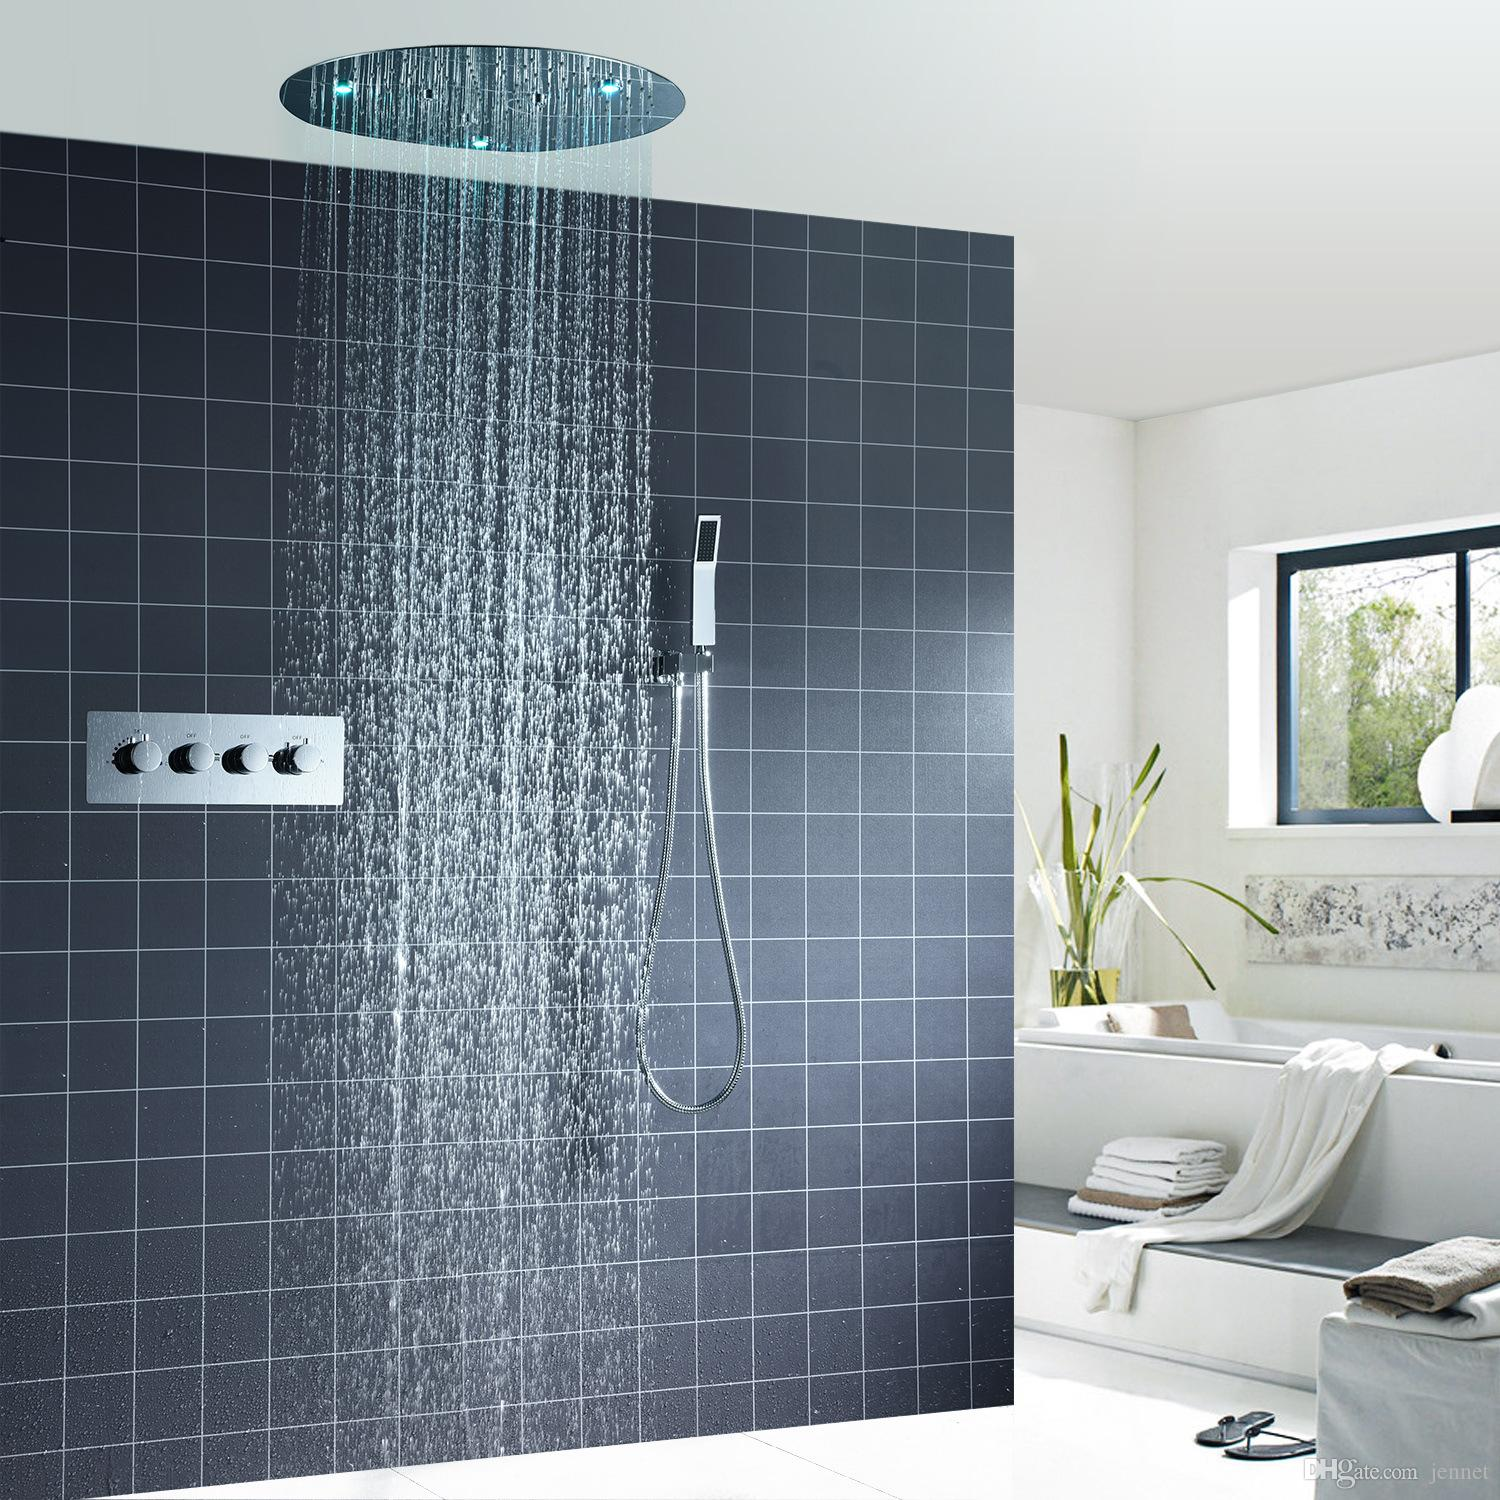 2019 Multi Color Led Shower Set Spa Functions Luxurious Bath System Large Waterfall Dual Rain Misty Concealed Ceiling Showerhead Massage From Jennet